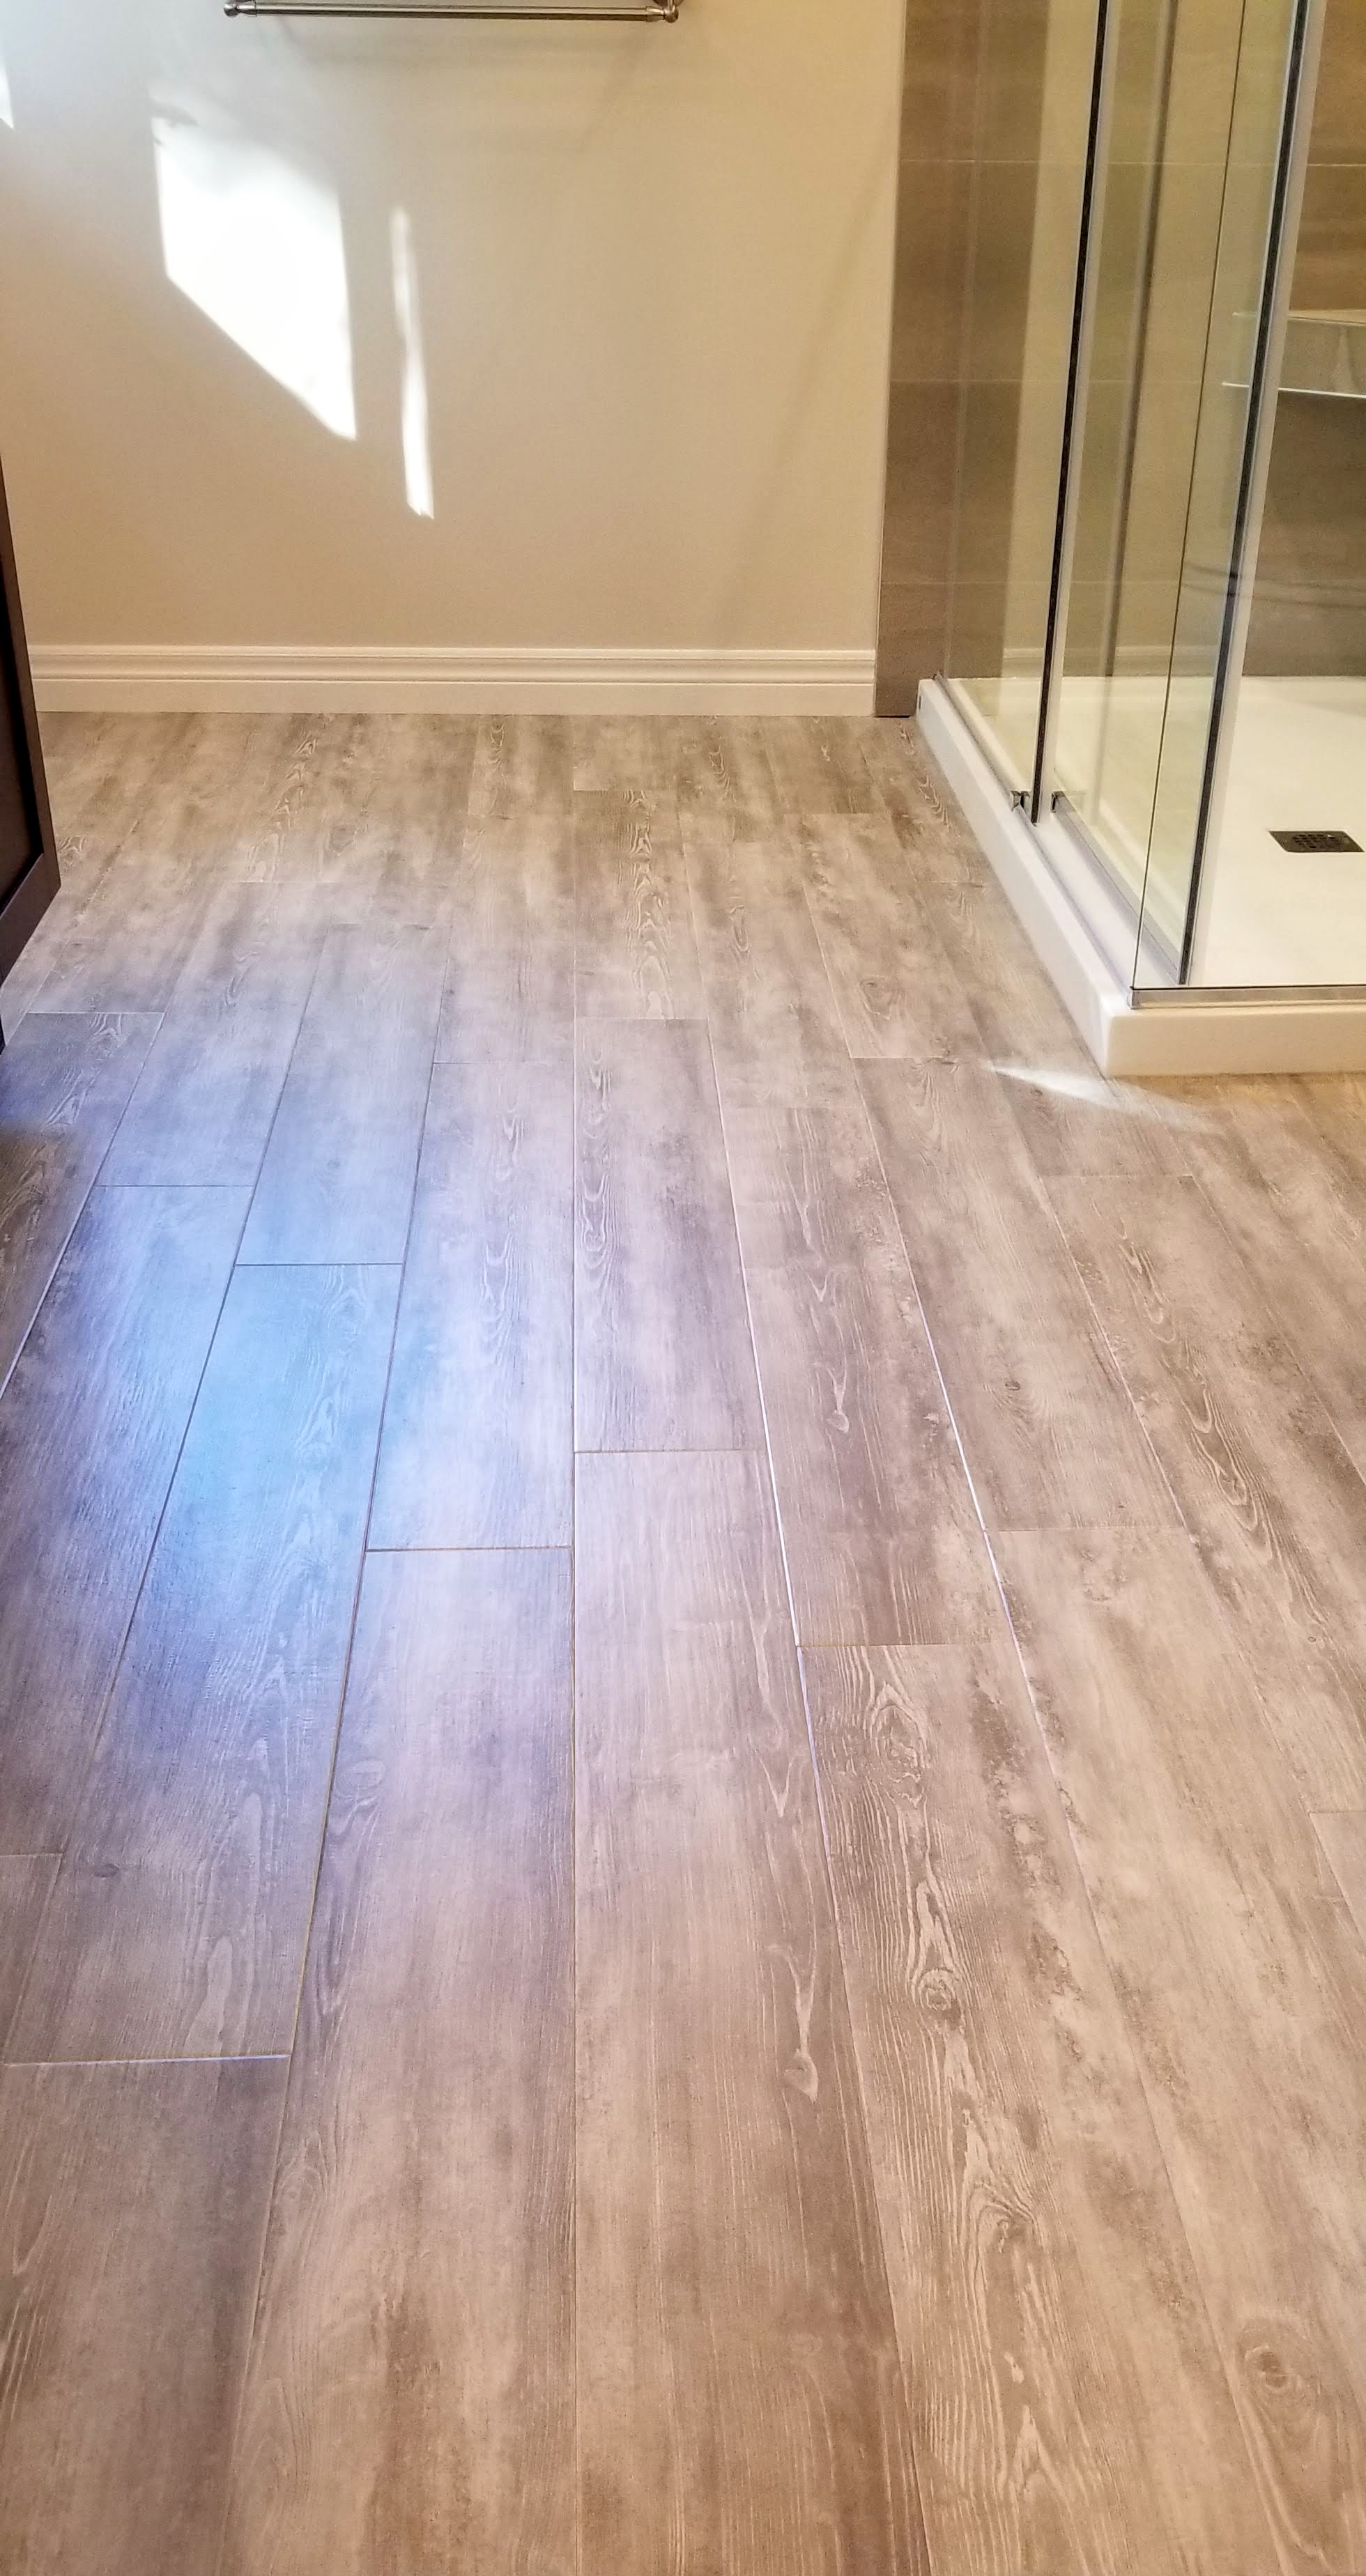 Vinyl plank floor installed in ensuite bathroom floor by Germano Creative Interior Contracting Ltd.